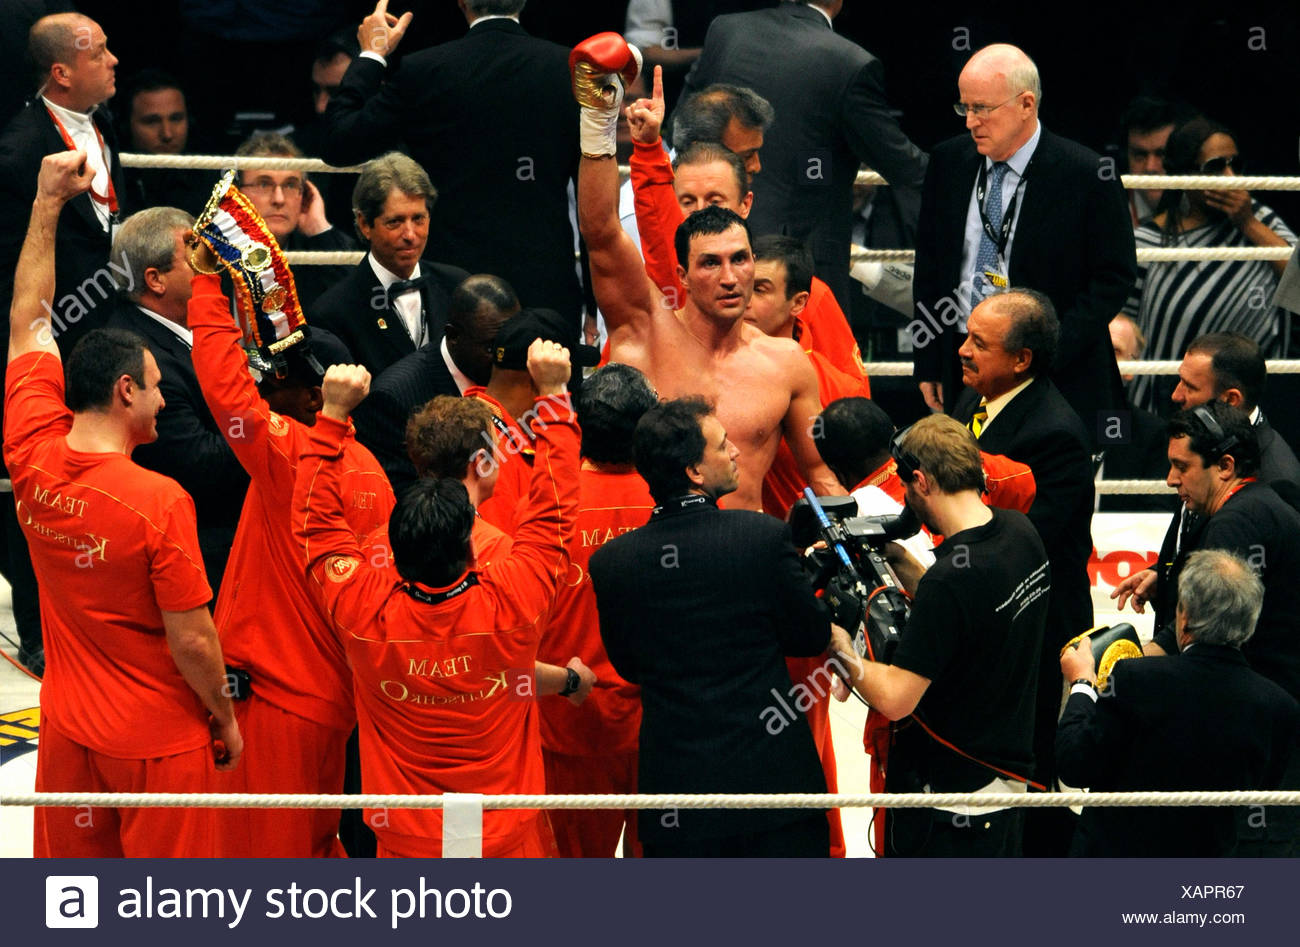 Boxing, Wladimir Klitschko, UKR, defeated Eddie Chambers, USA, by KO, heavyweight championship fight in the Esprit Arena - Stock Image